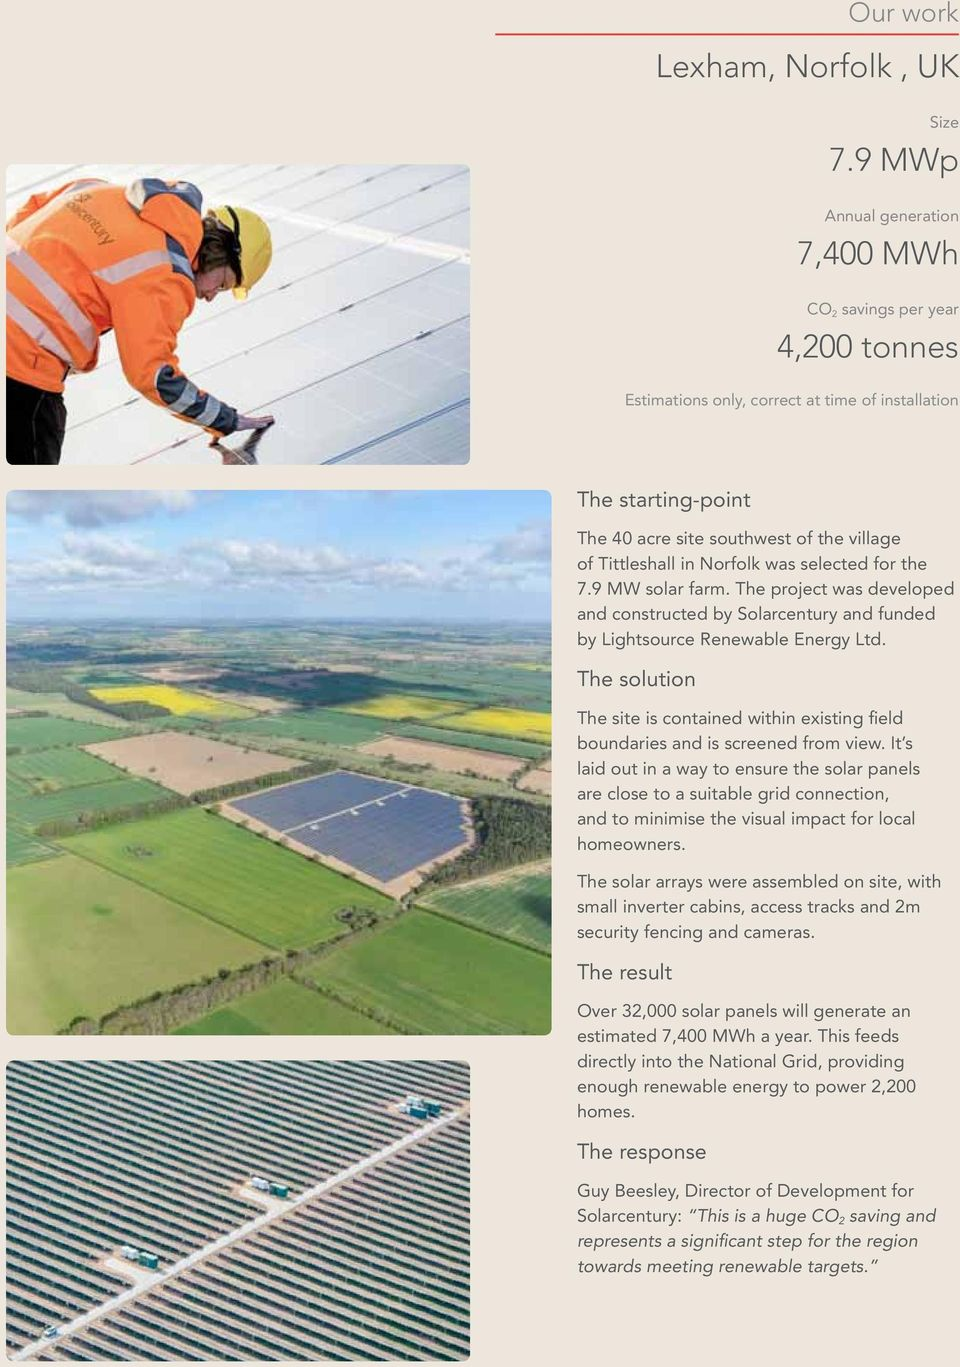 Norfolk was selected for the 7.9 MW solar farm. The project was developed and constructed by Solarcentury and funded by Lightsource Renewable Energy Ltd.